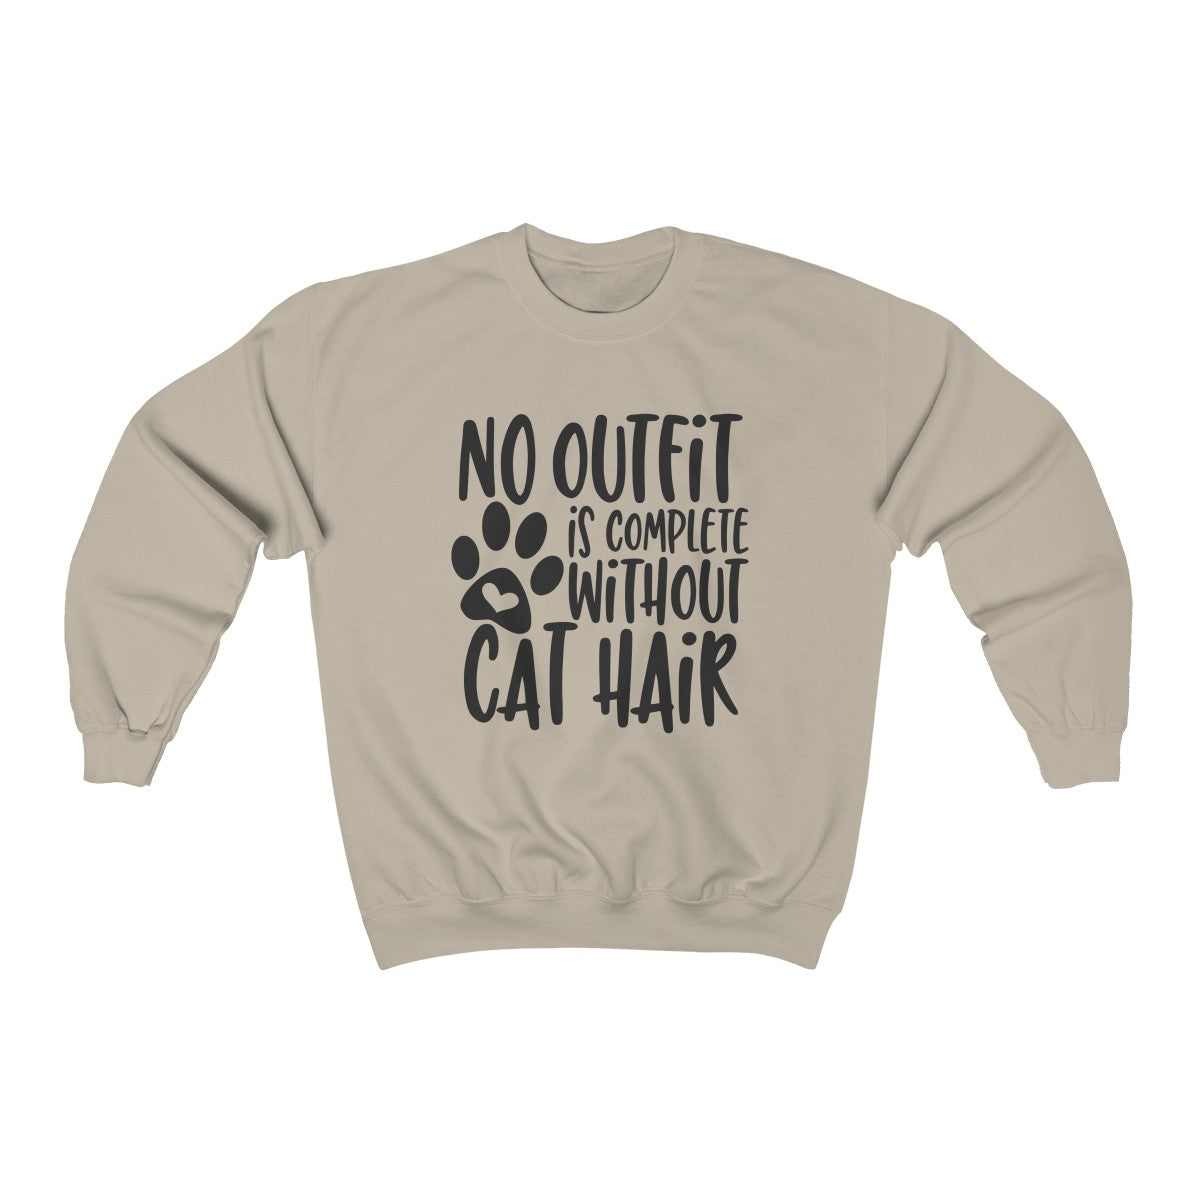 No Outfit Is Complete Without Cat Hair Sweatshirt